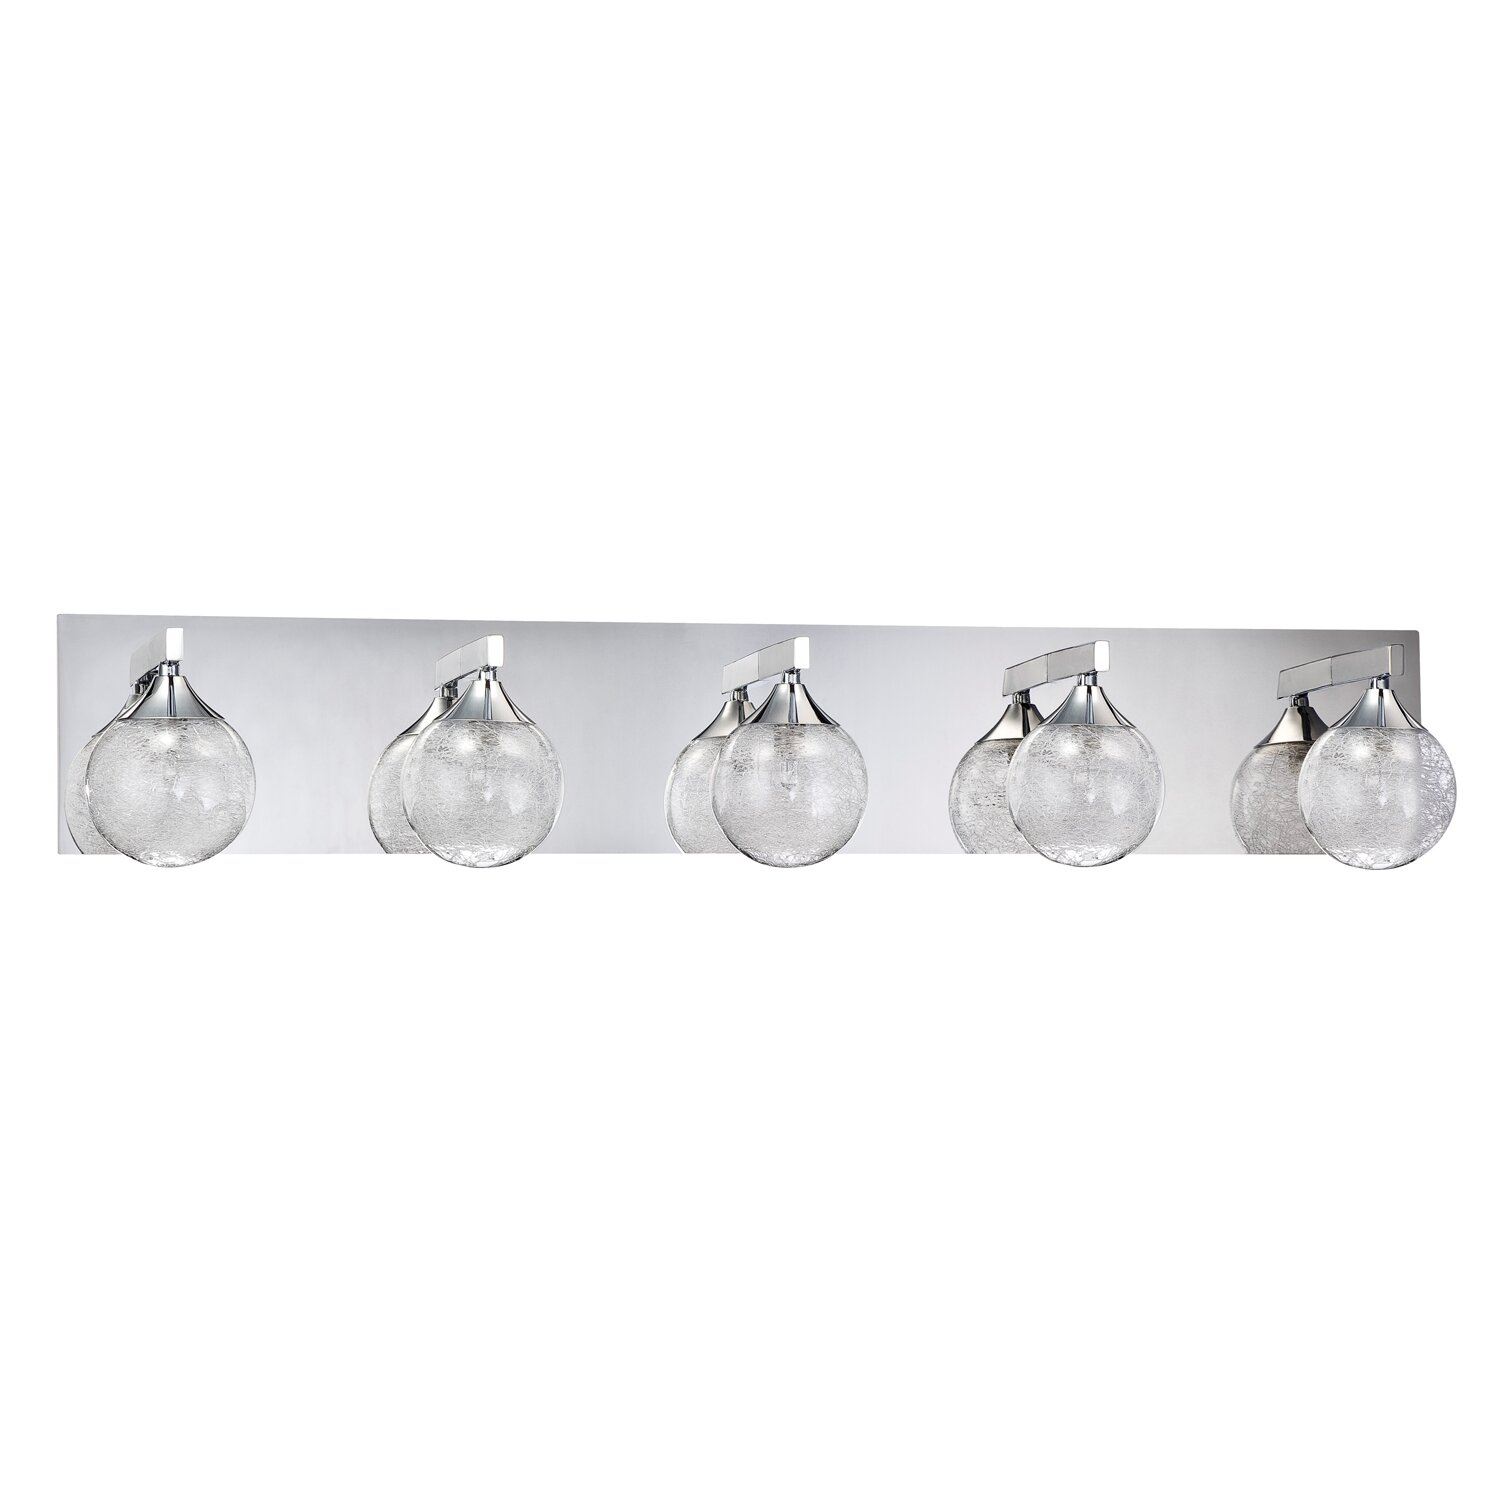 5 Light Bathroom Vanity Light: Kendal Lighting Fybra 5 Light Bath Vanity Light & Reviews